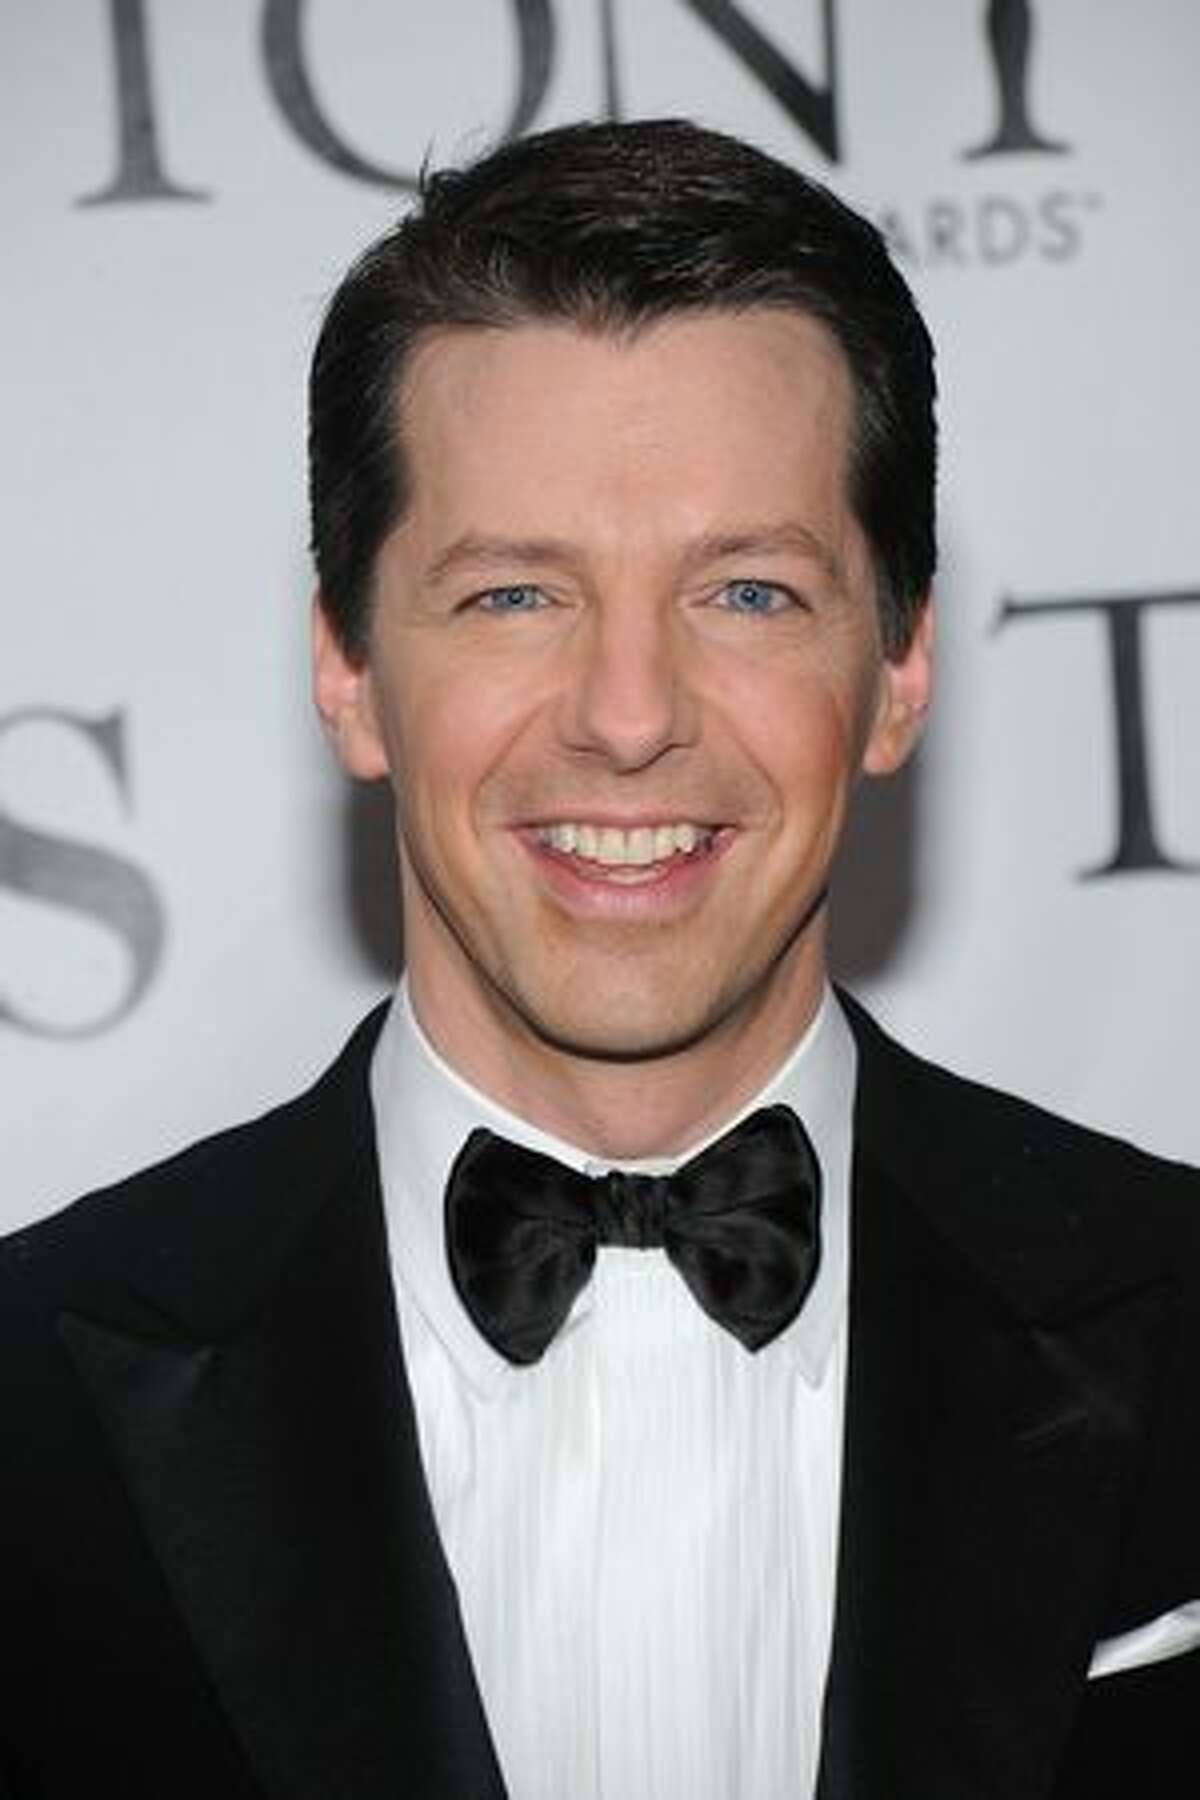 Actor Sean Hayes attends the 64th Annual Tony Awards at Radio City Music Hall.